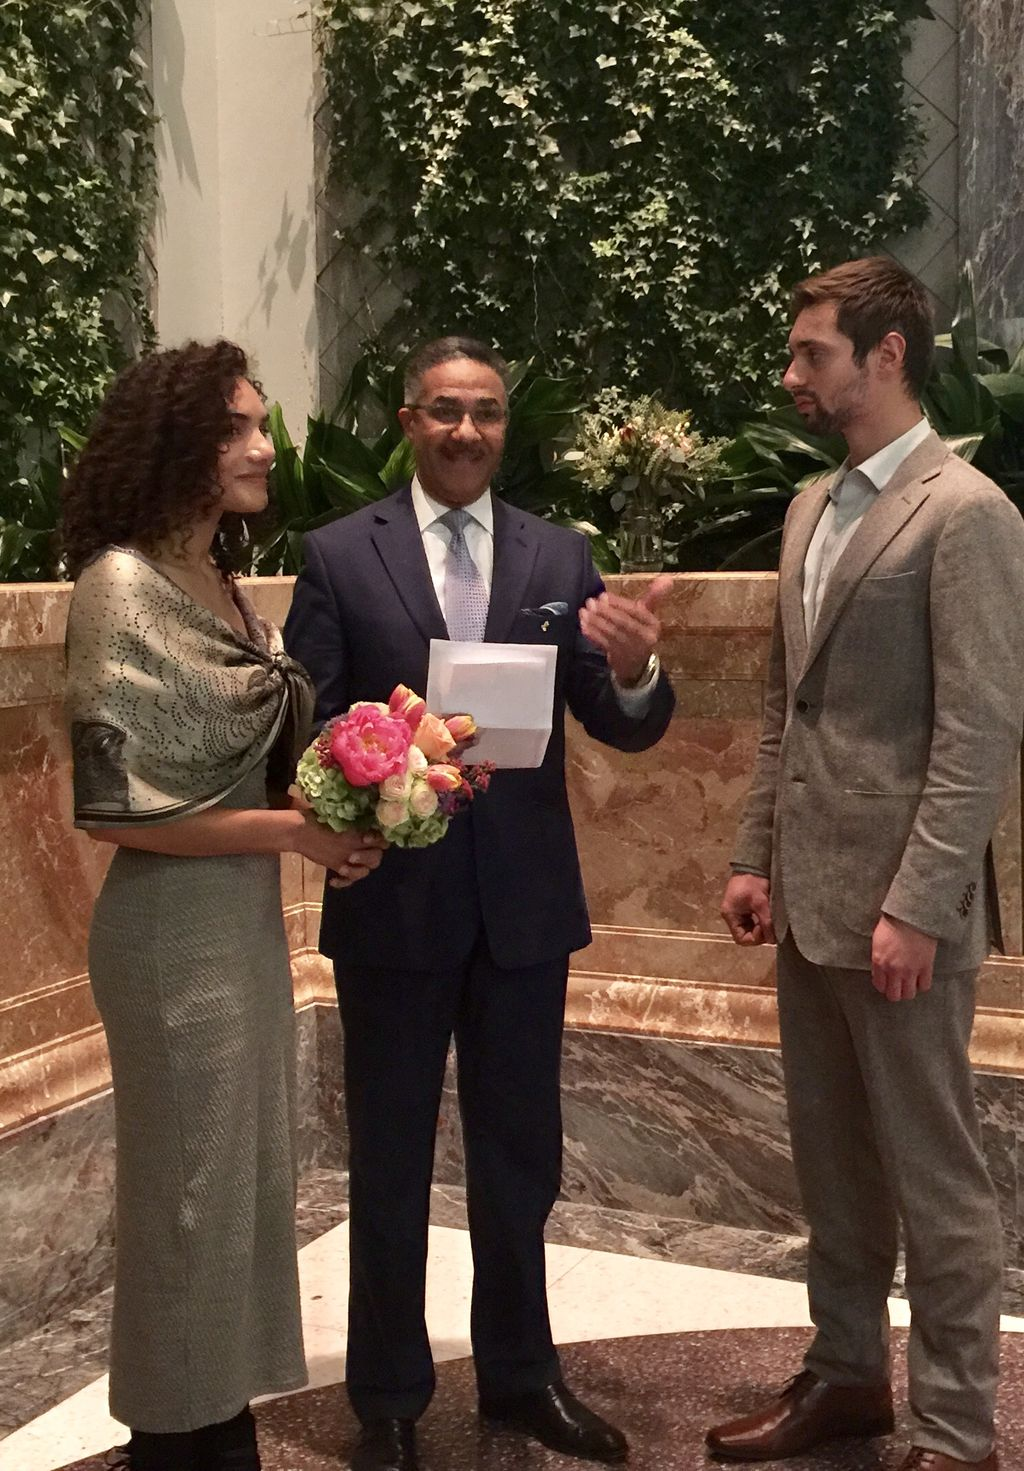 Double Wedding Vow Renewal for two couples